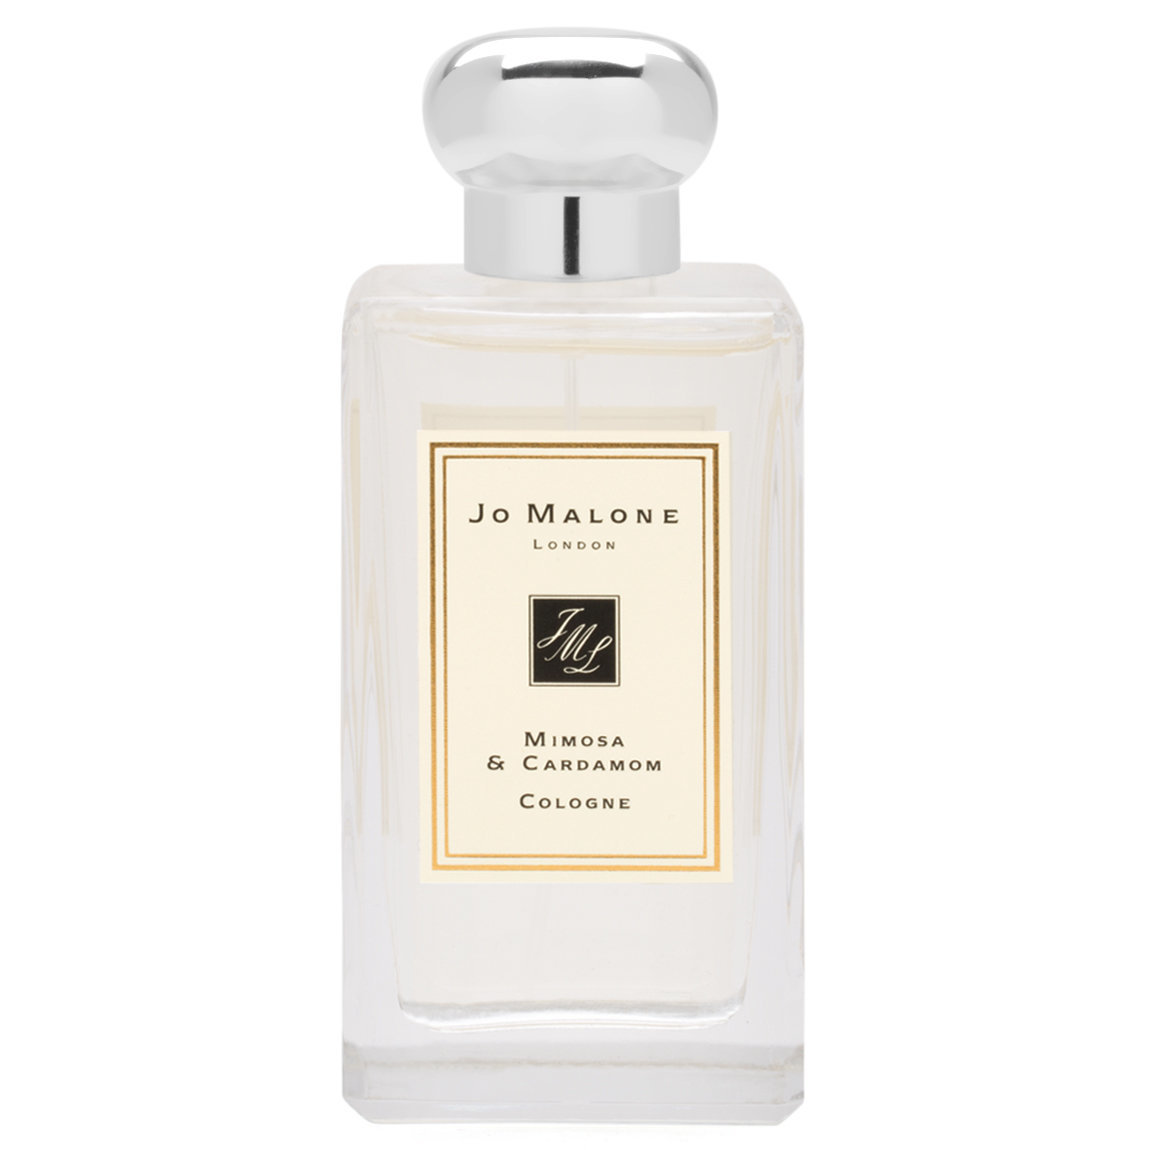 Jo Malone London Mimosa & Cardamom Cologne 100 ml alternative view 1 - product swatch.